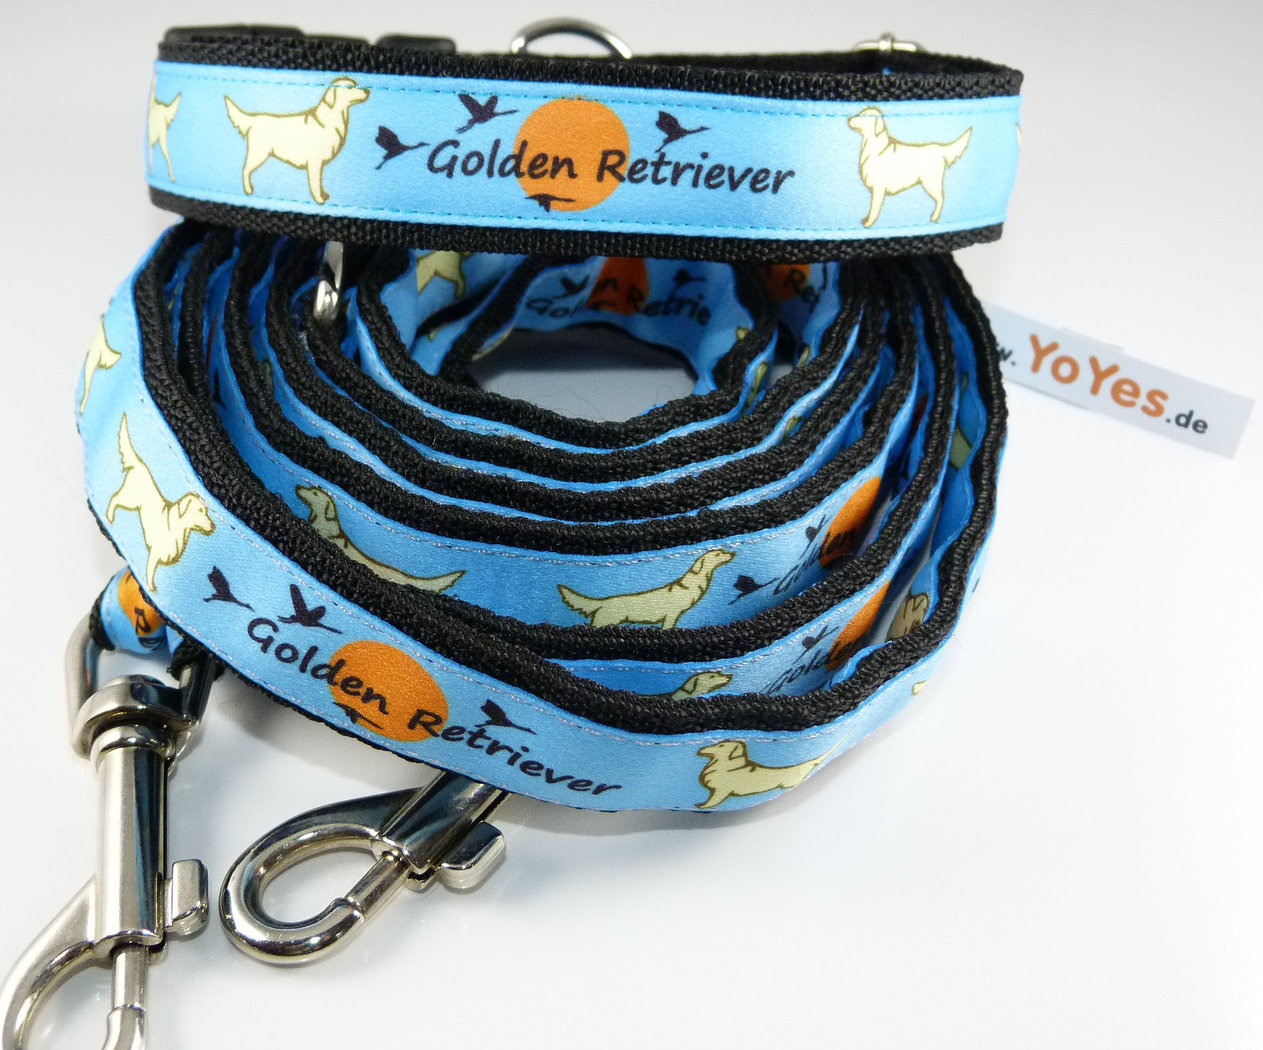 Golden Retriever Motiv in blau, Set Halsband + Führleine 210cm